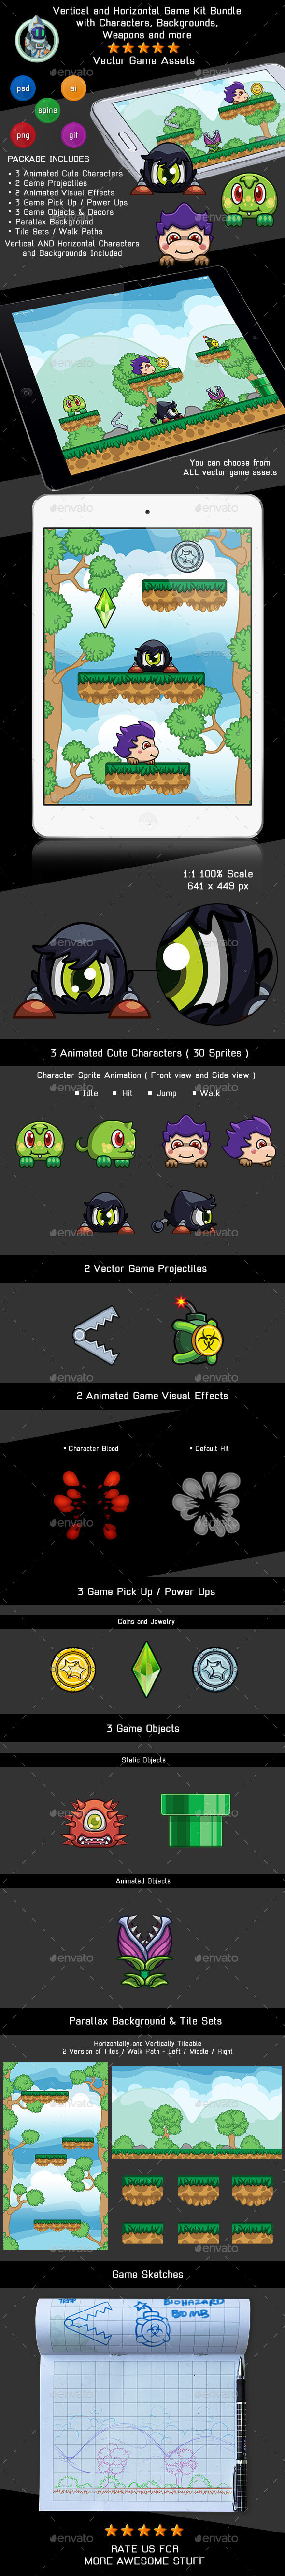 Vector Cute Game Assets with Characters, Weapons and More - Game Kits Game Assets